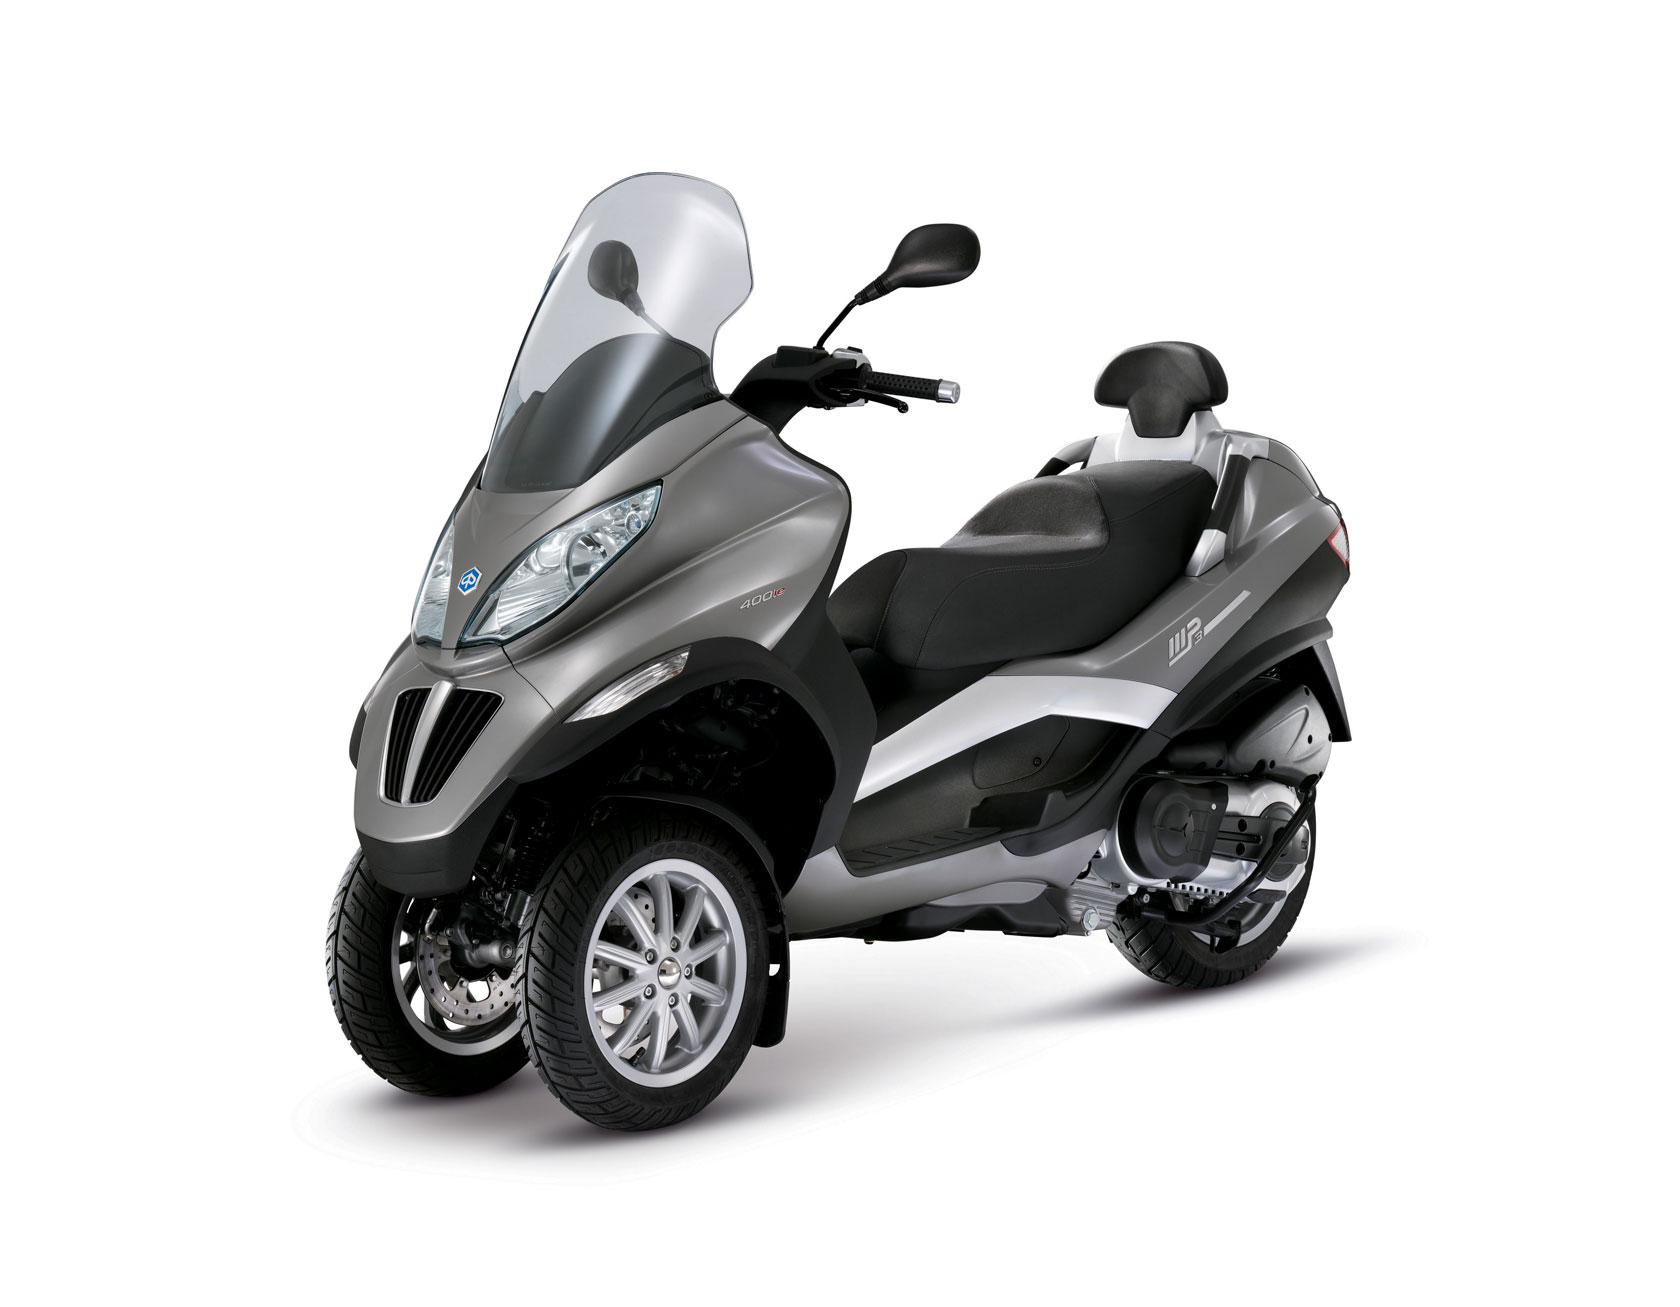 Piaggio MP3 400 2011 images #120673